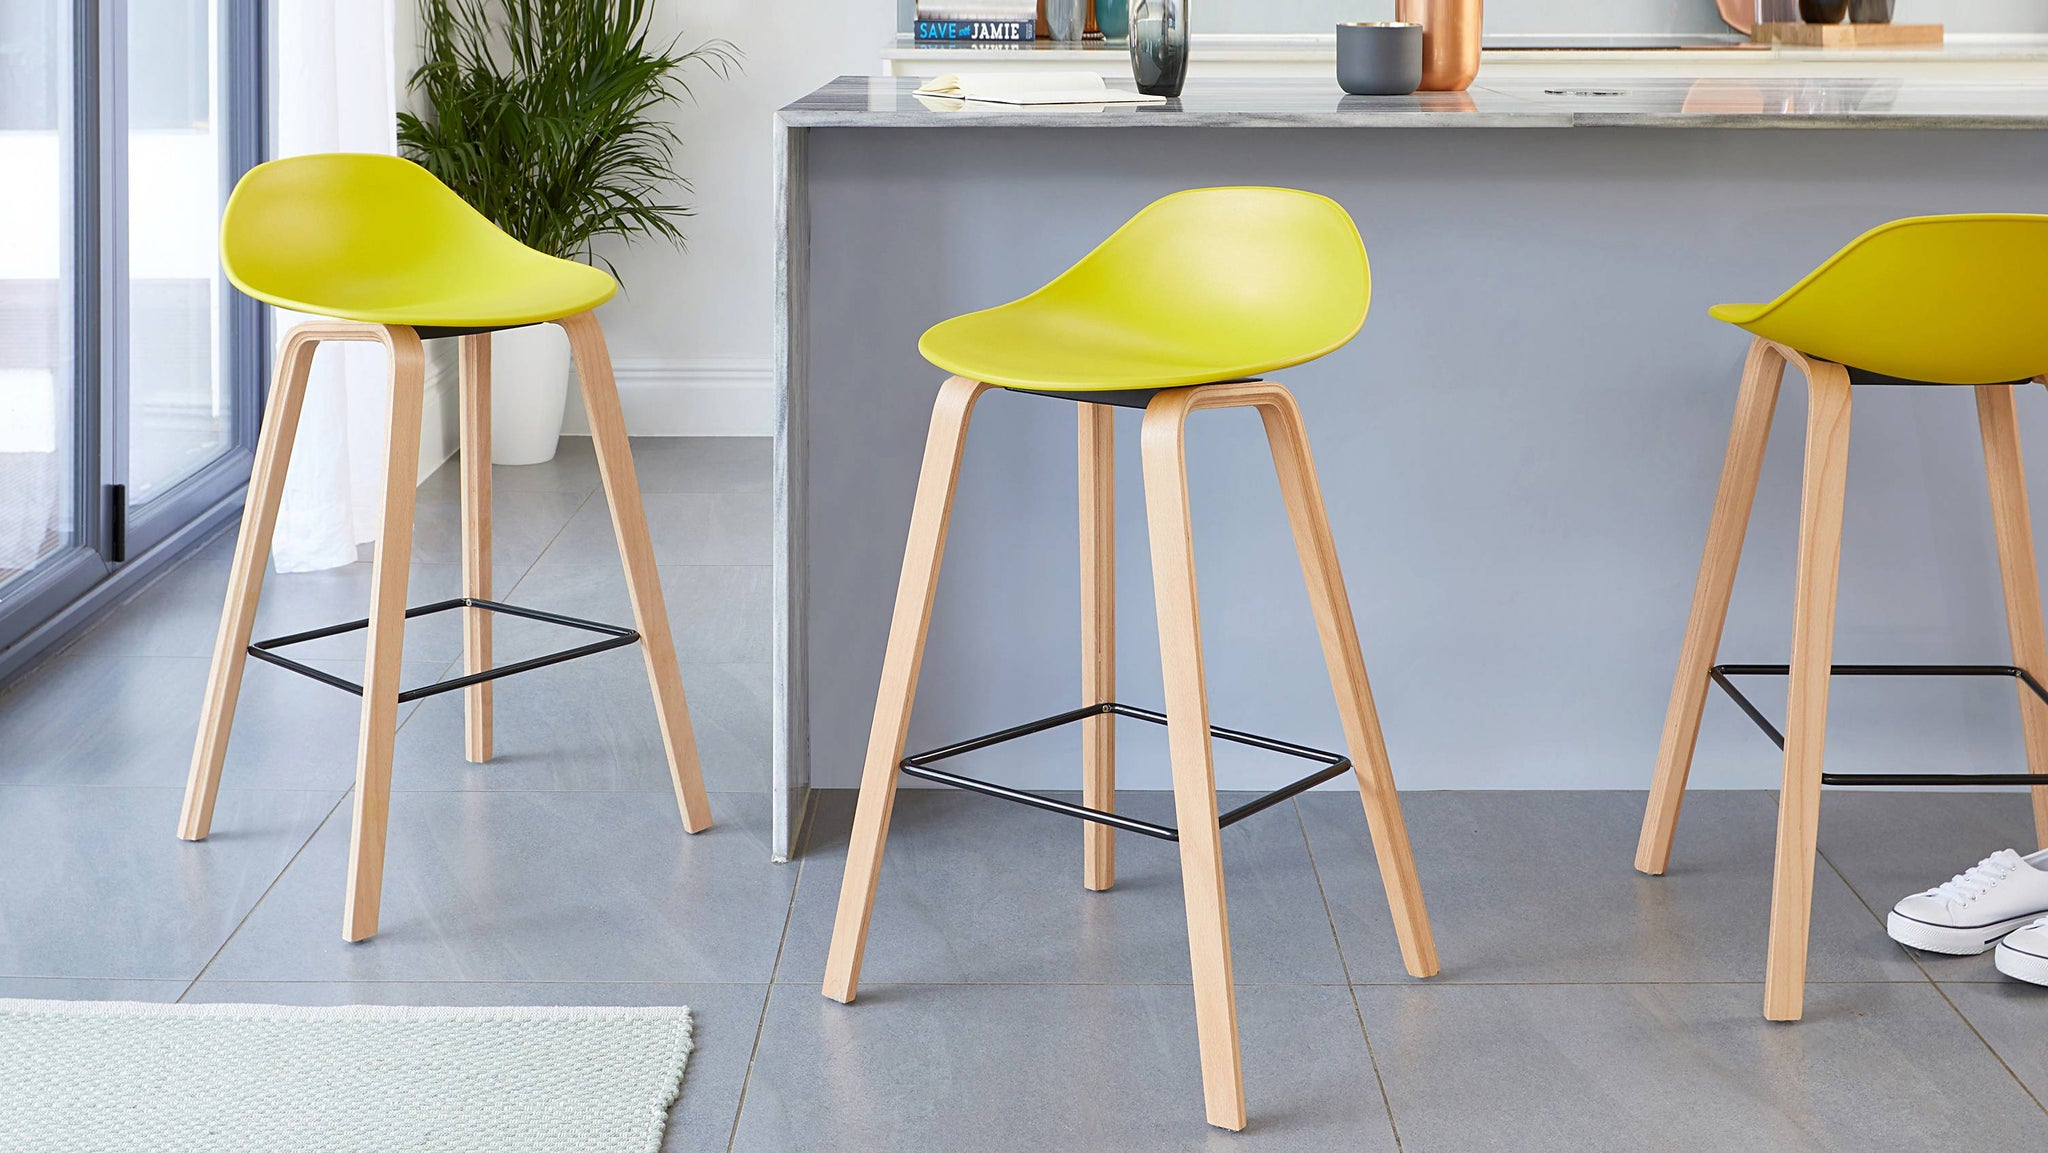 Yellow wooden bar stools